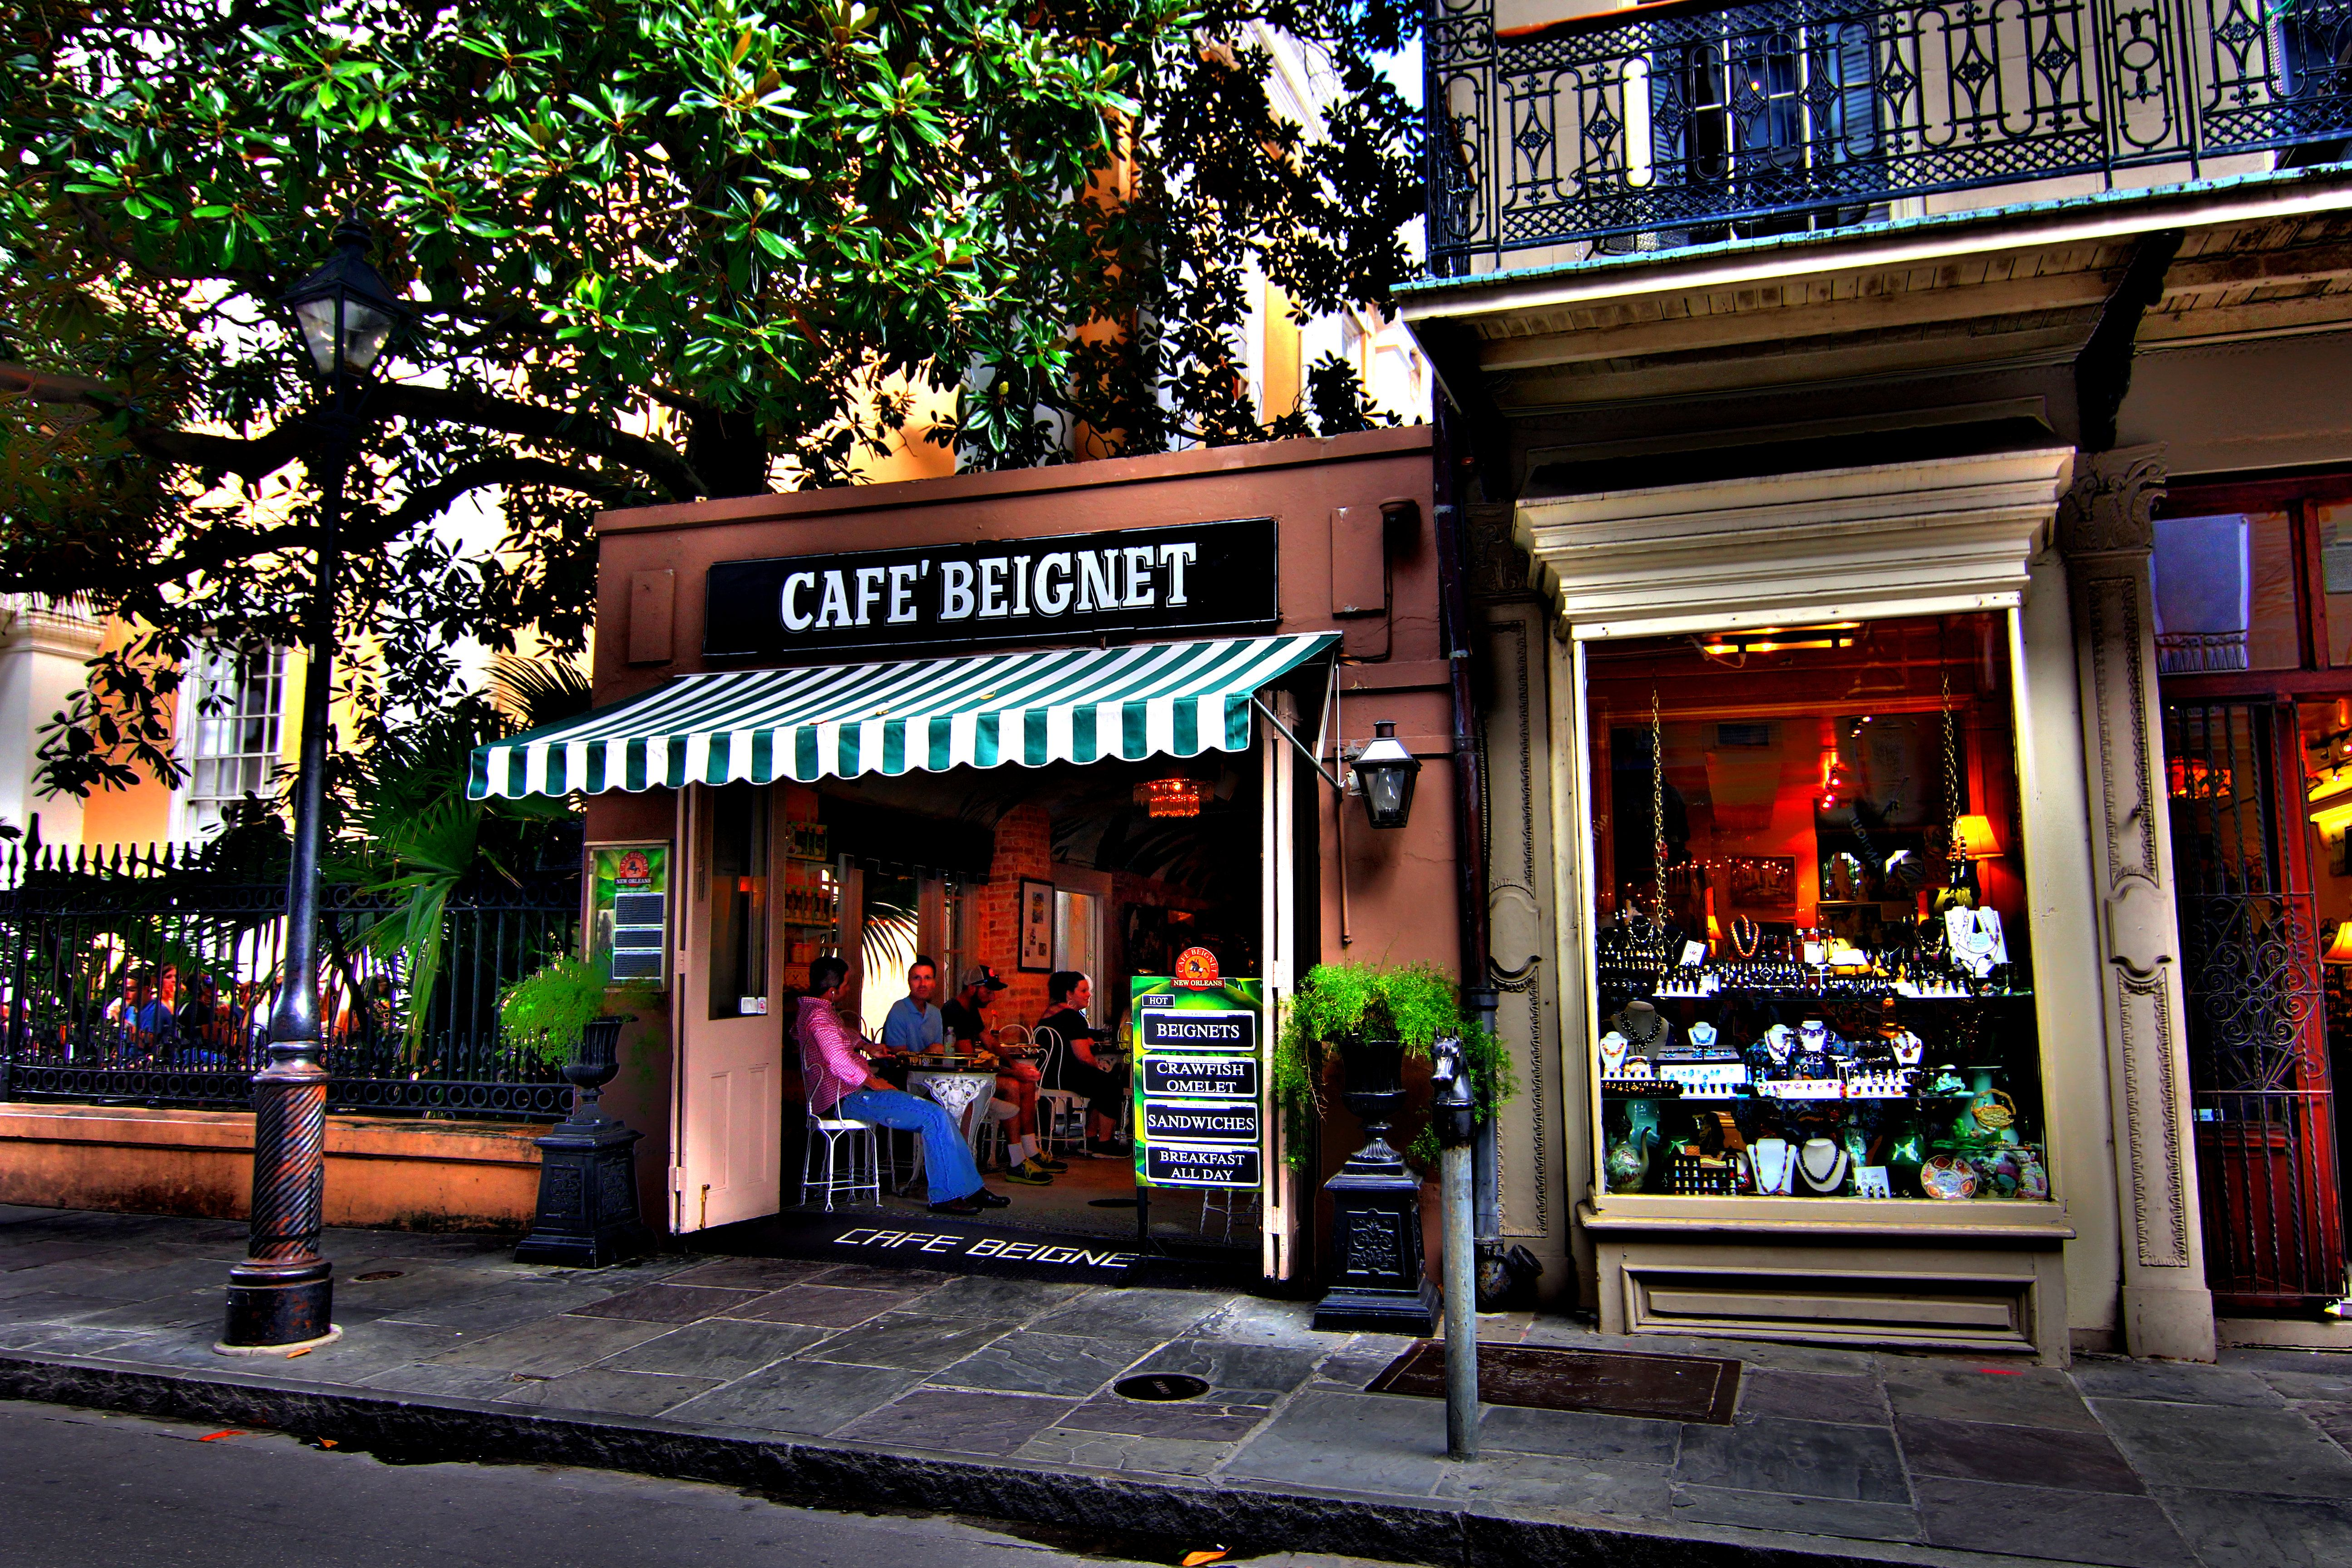 Cafe Beignet In New Orleans Hdr Canon 60d Tokina 11 16 At F 6 3 Hdr Photography Cafe Beignet Orleans